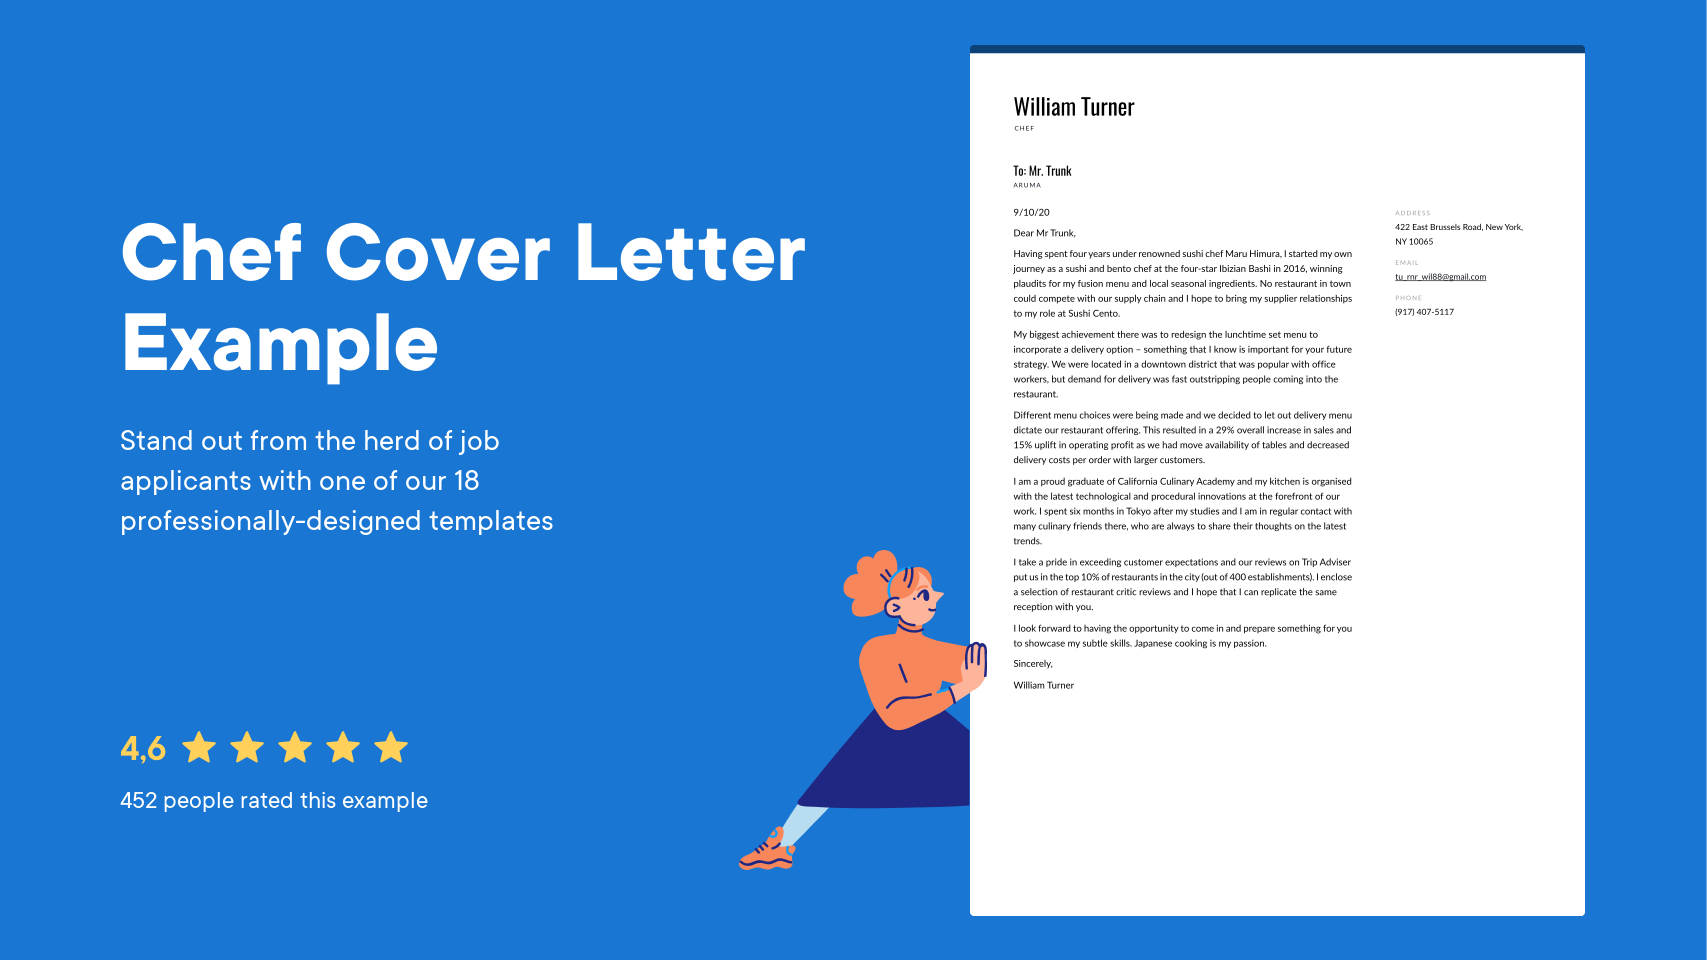 Chef Cover Letter Examples Expert Tips Free Resume Io